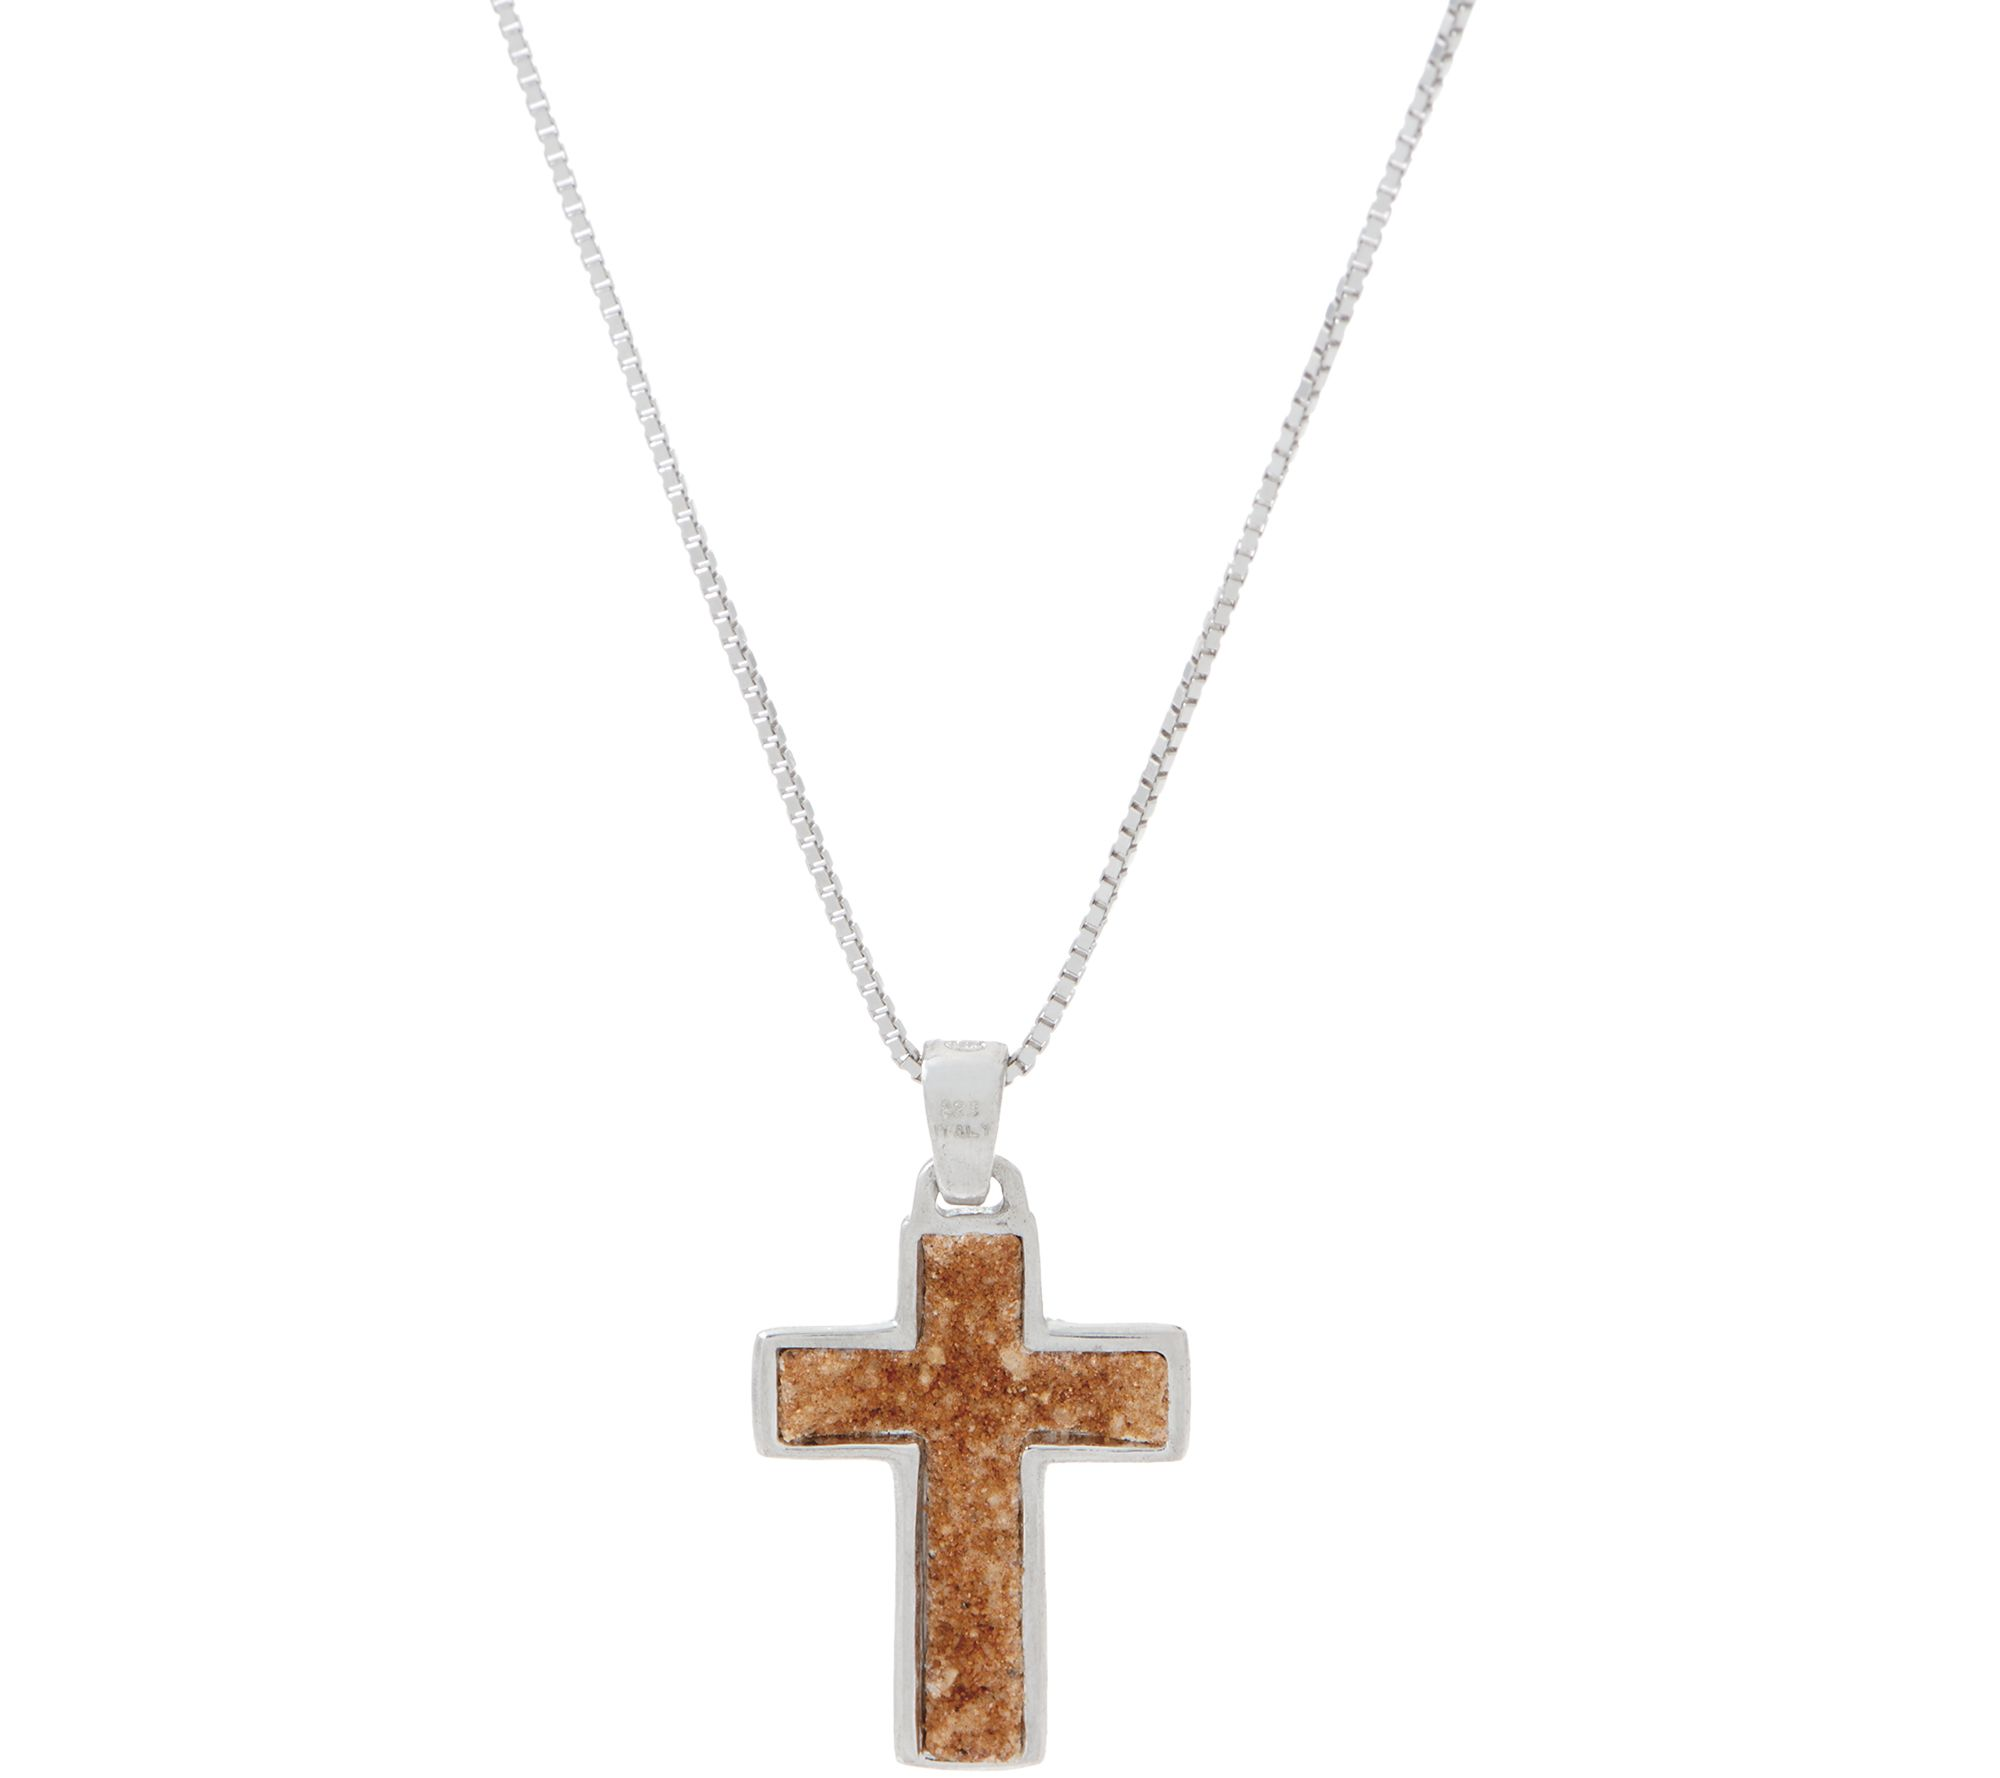 pendant l eastern heavy fullxfull es products express handmade jewelry vintage cross shipping silver a sterling middle il christianity jerusalem